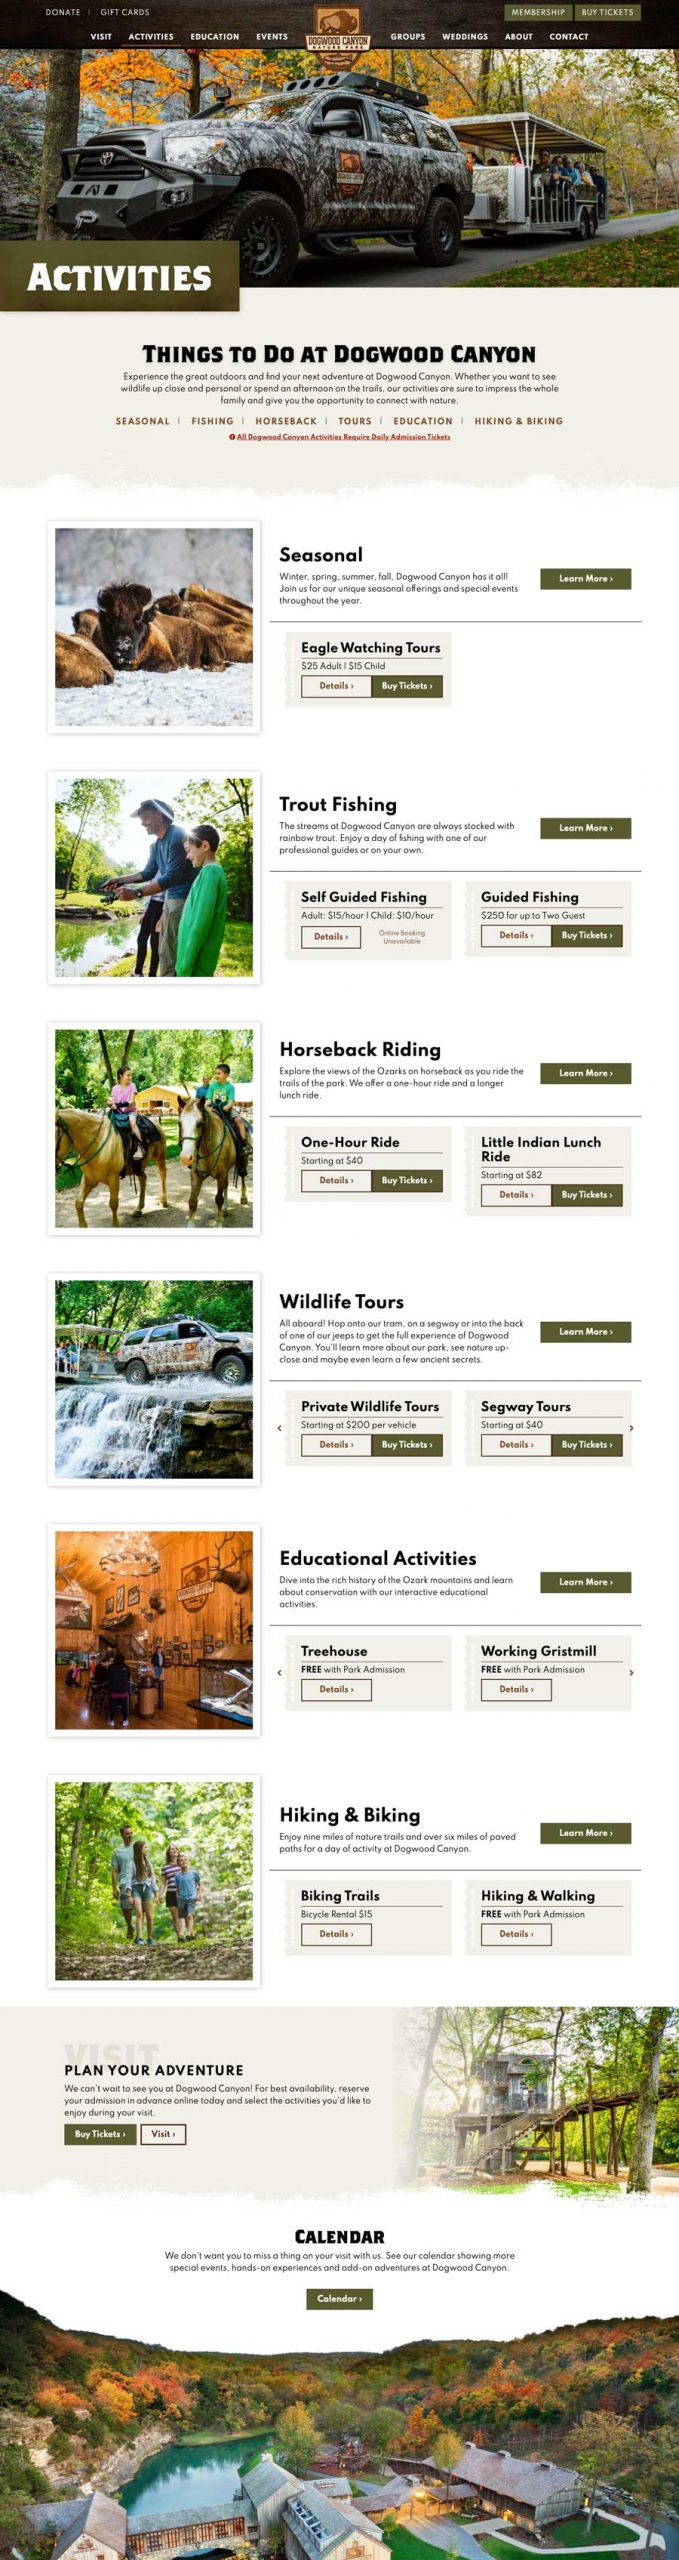 Dogwood Canyon Nature Park Activities